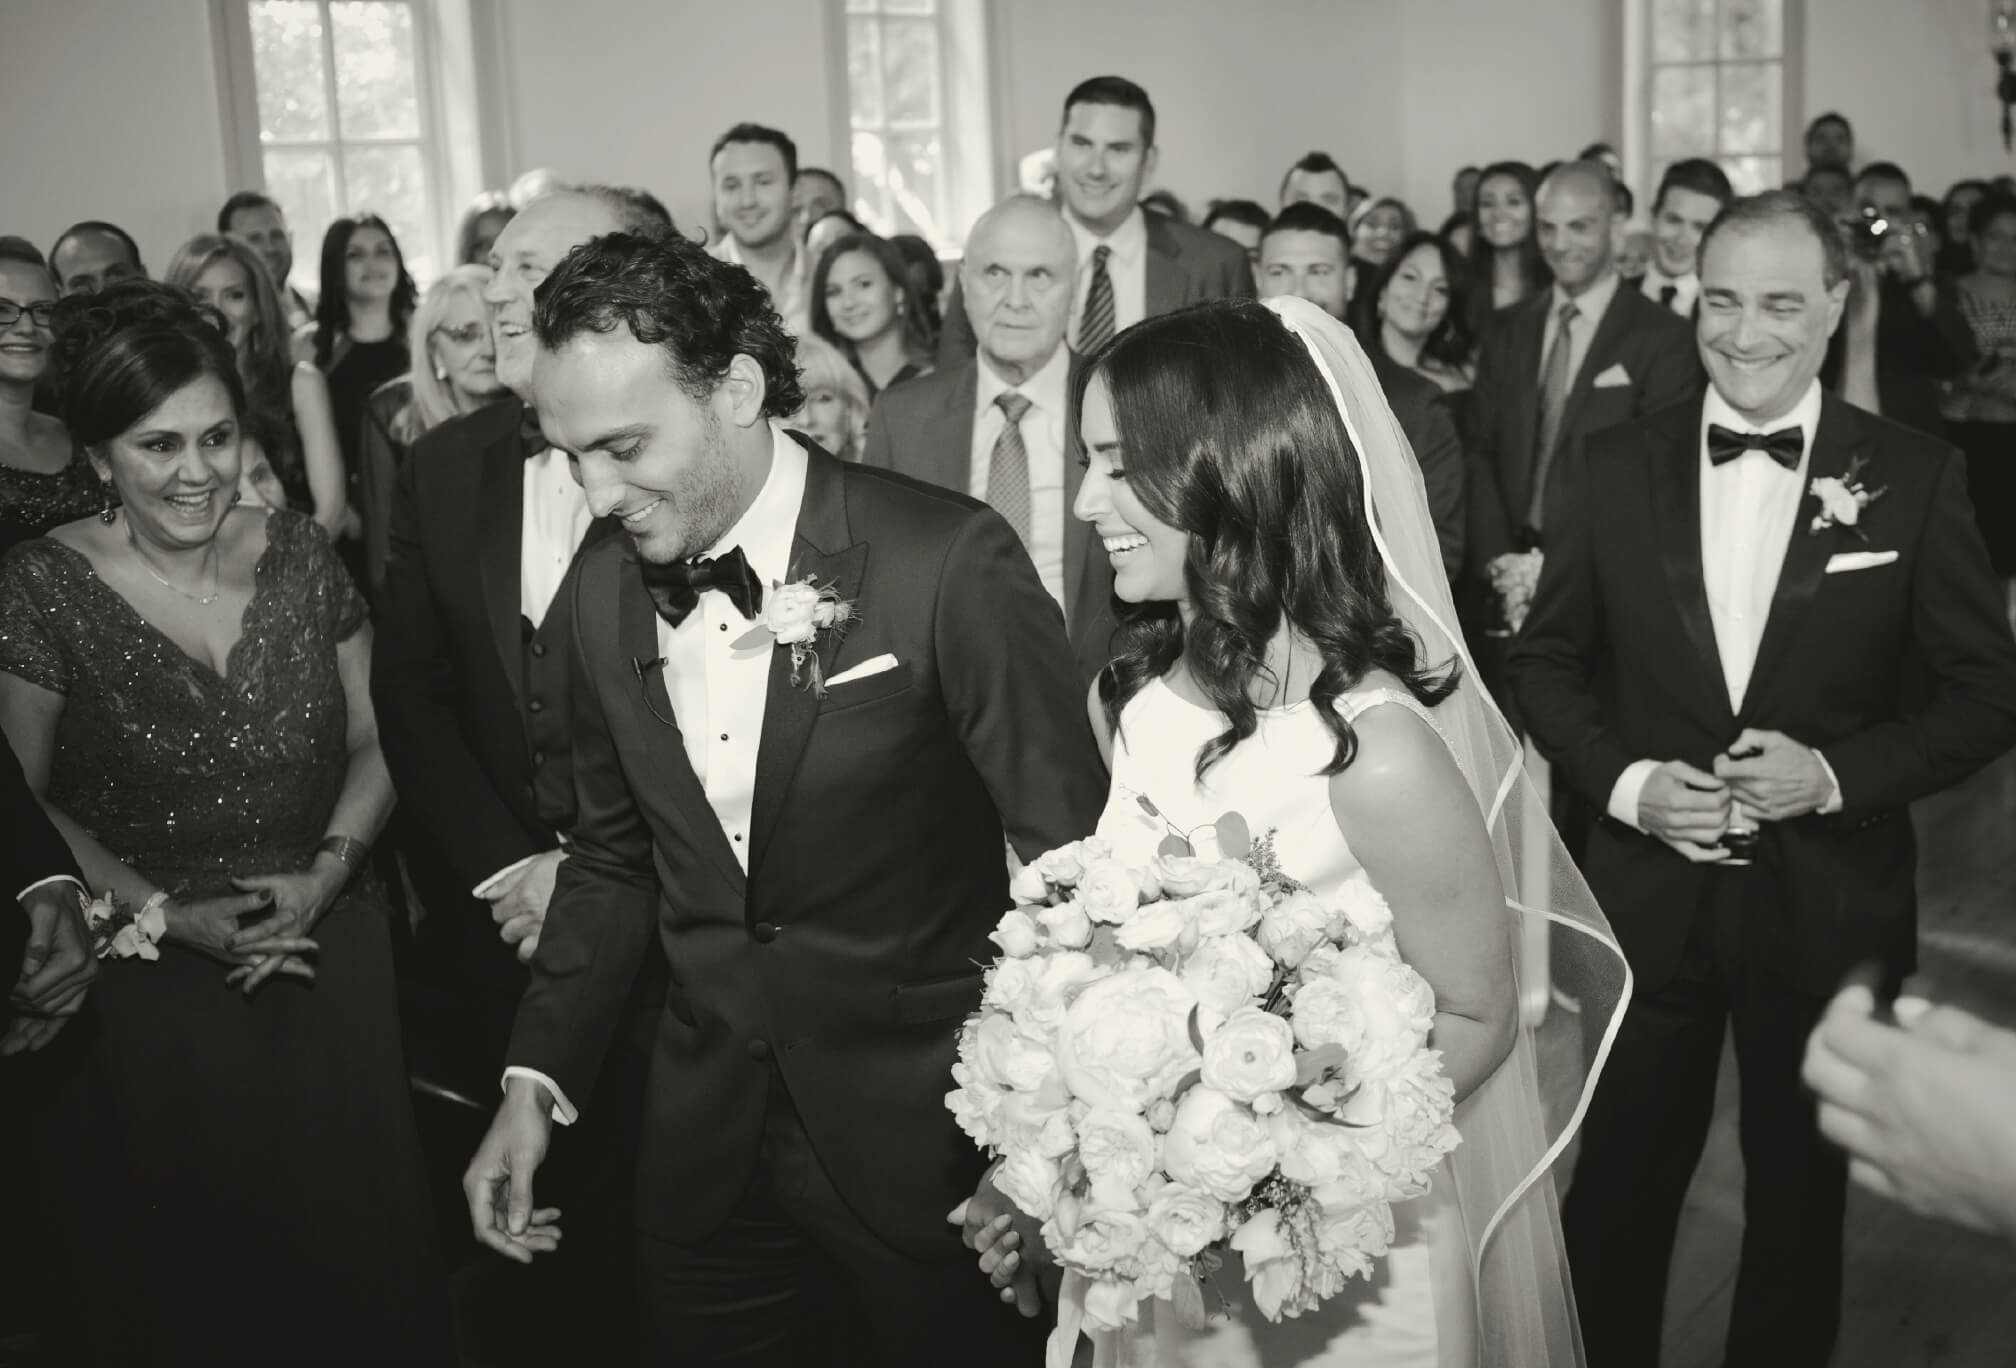 kleinburg chapel wedding details